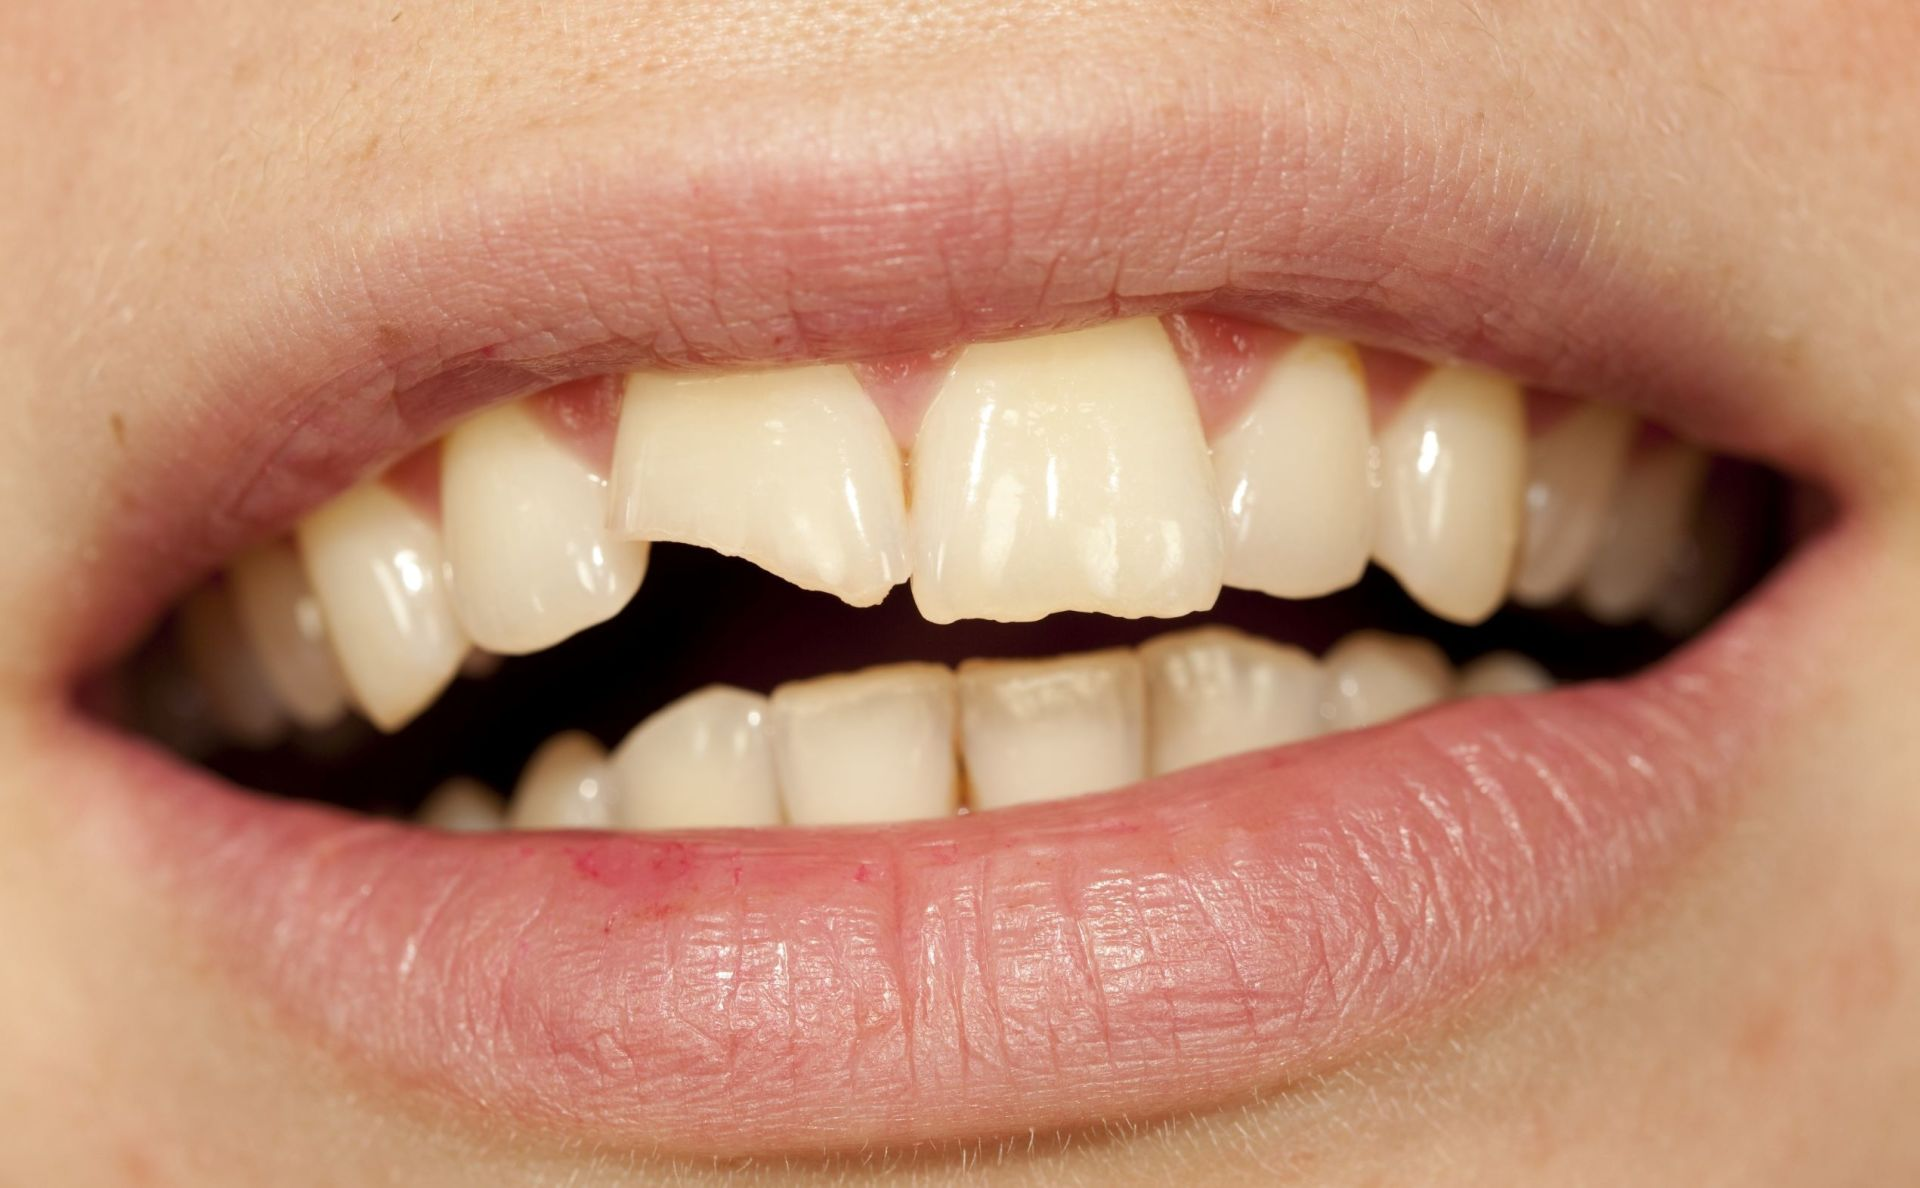 A Broken Front Tooth and the Psychology of the Smile